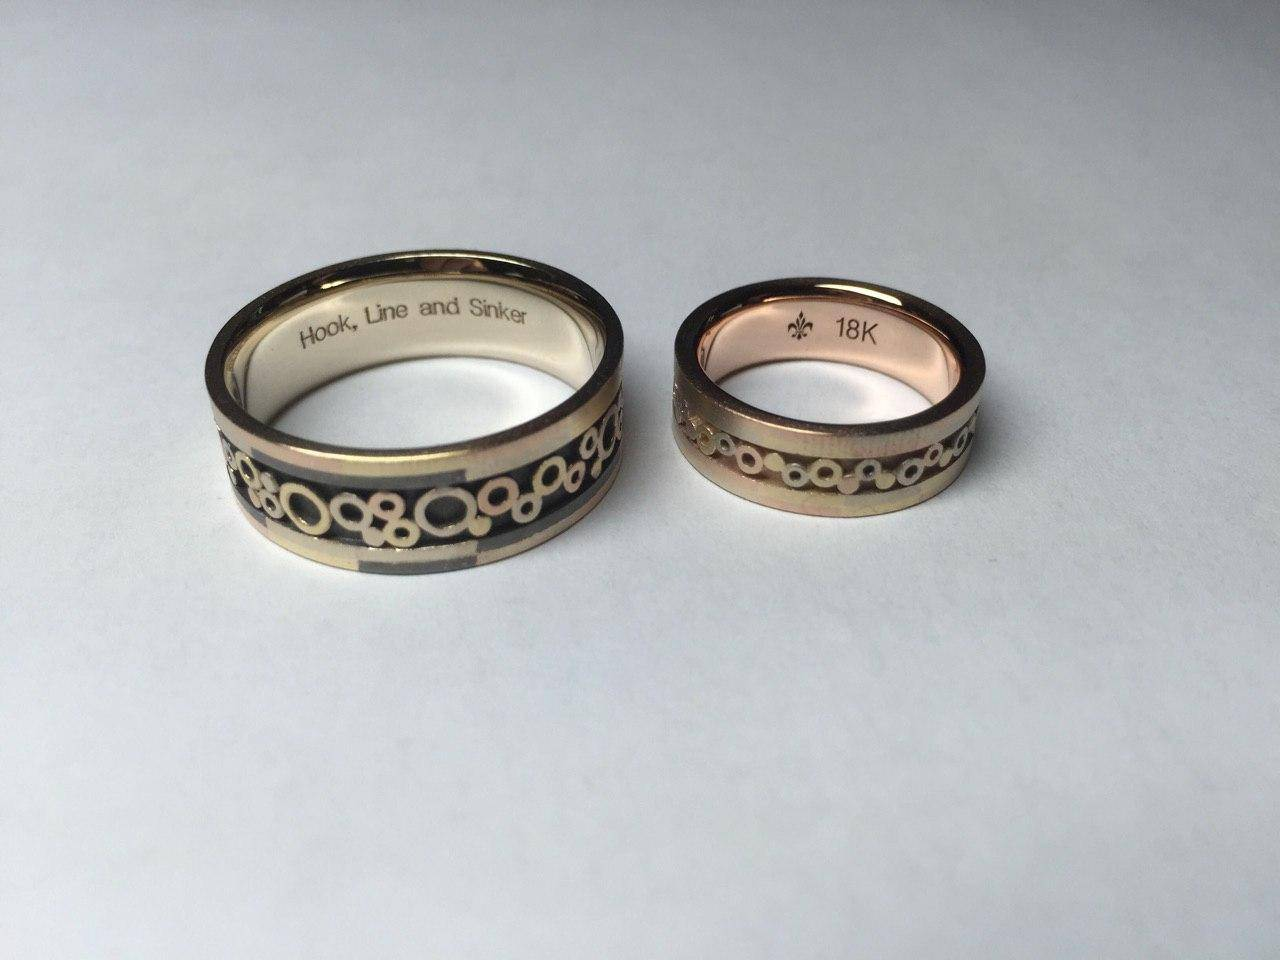 Mr. Pool and Grace`s wedding rings